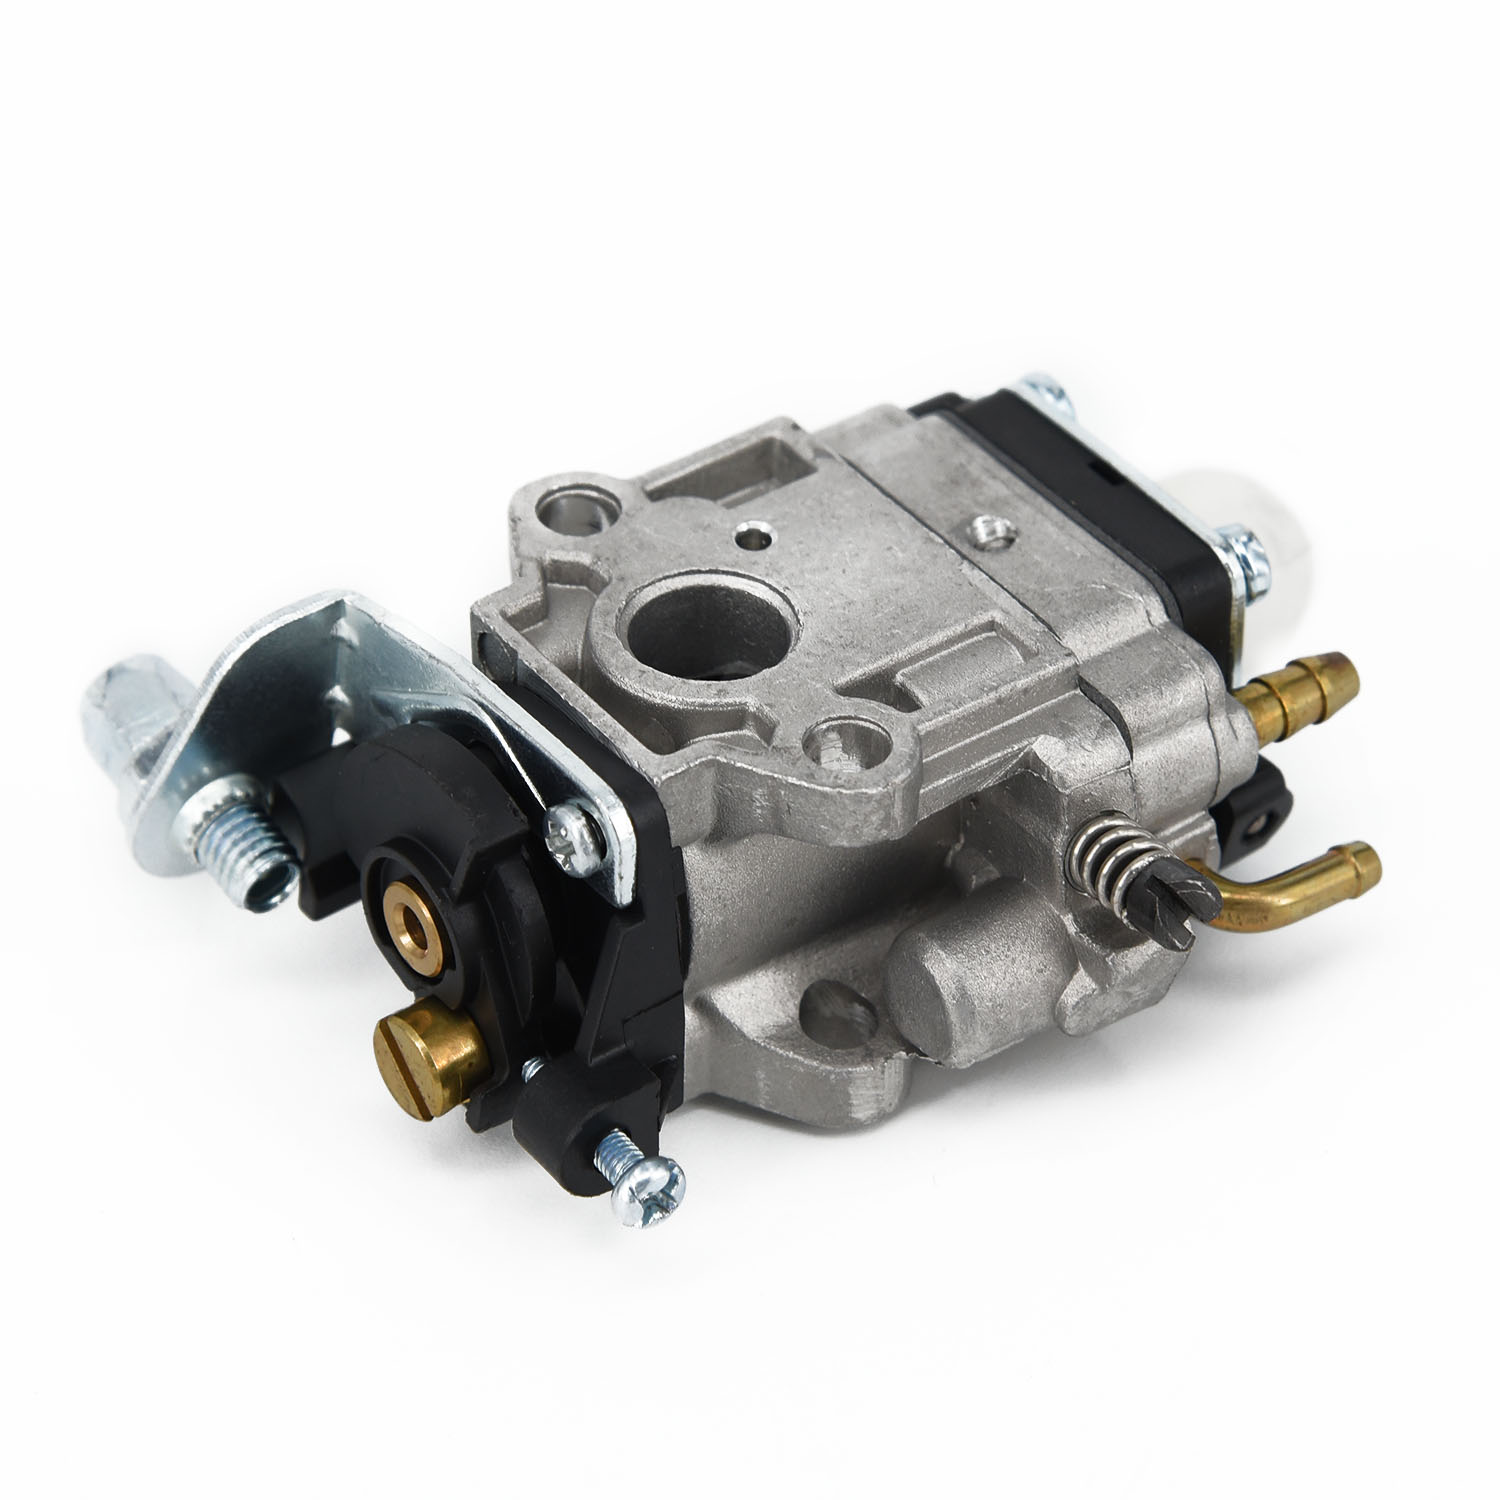 Carburetor for H119 26cc High quality Replacement